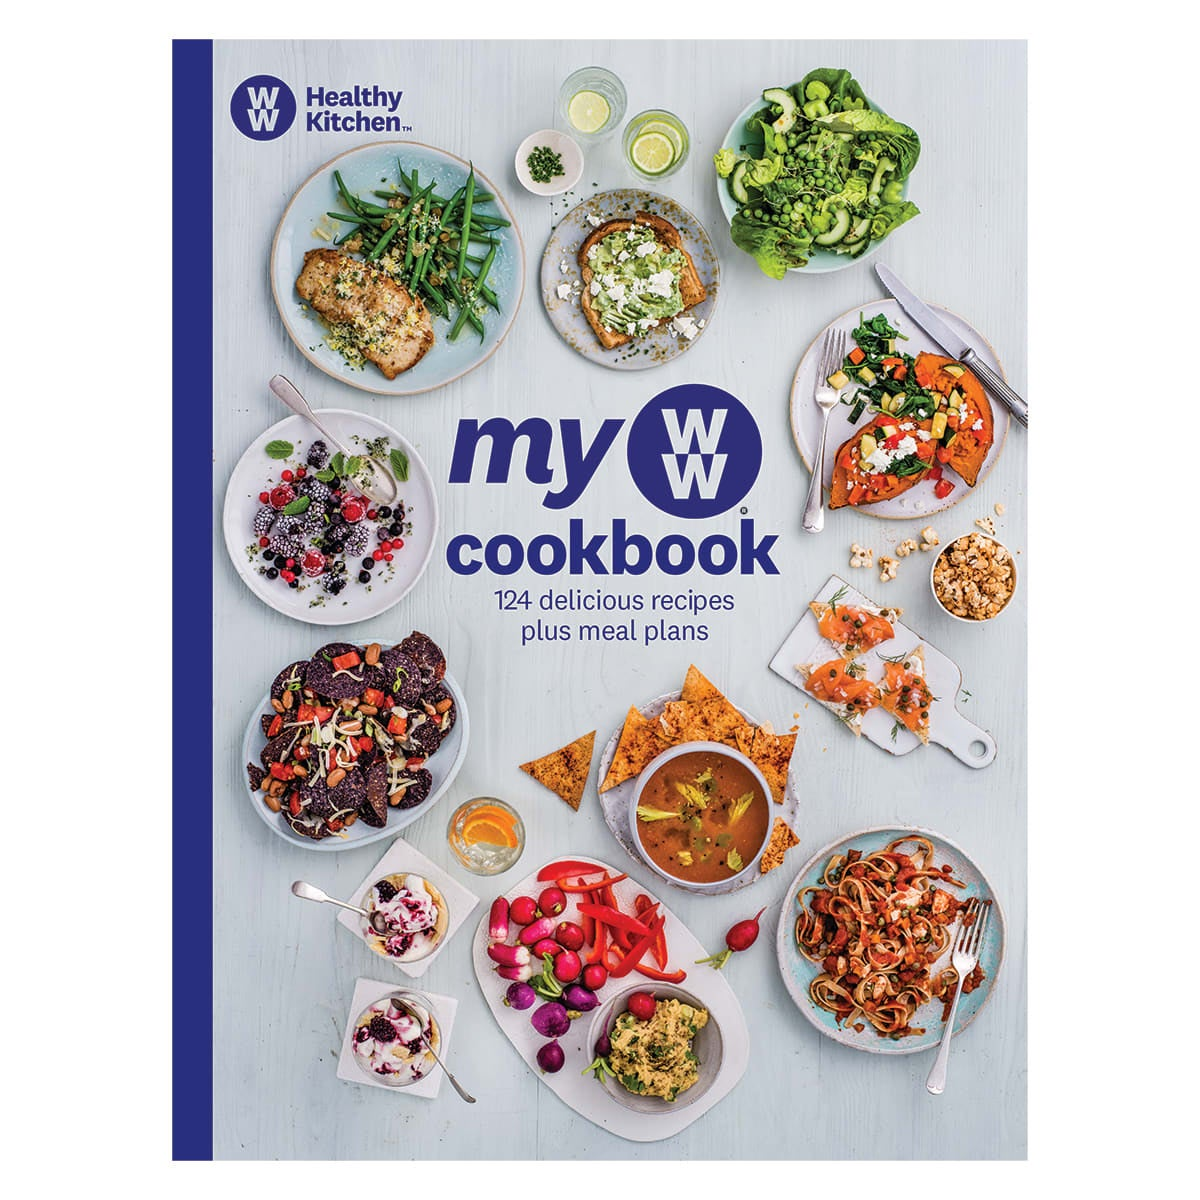 My WW Cookbook, 124 delicious recipes plus meal plans, recipes for breakfast, lunch, dinner, snacks and desserts, useful kitchen tips